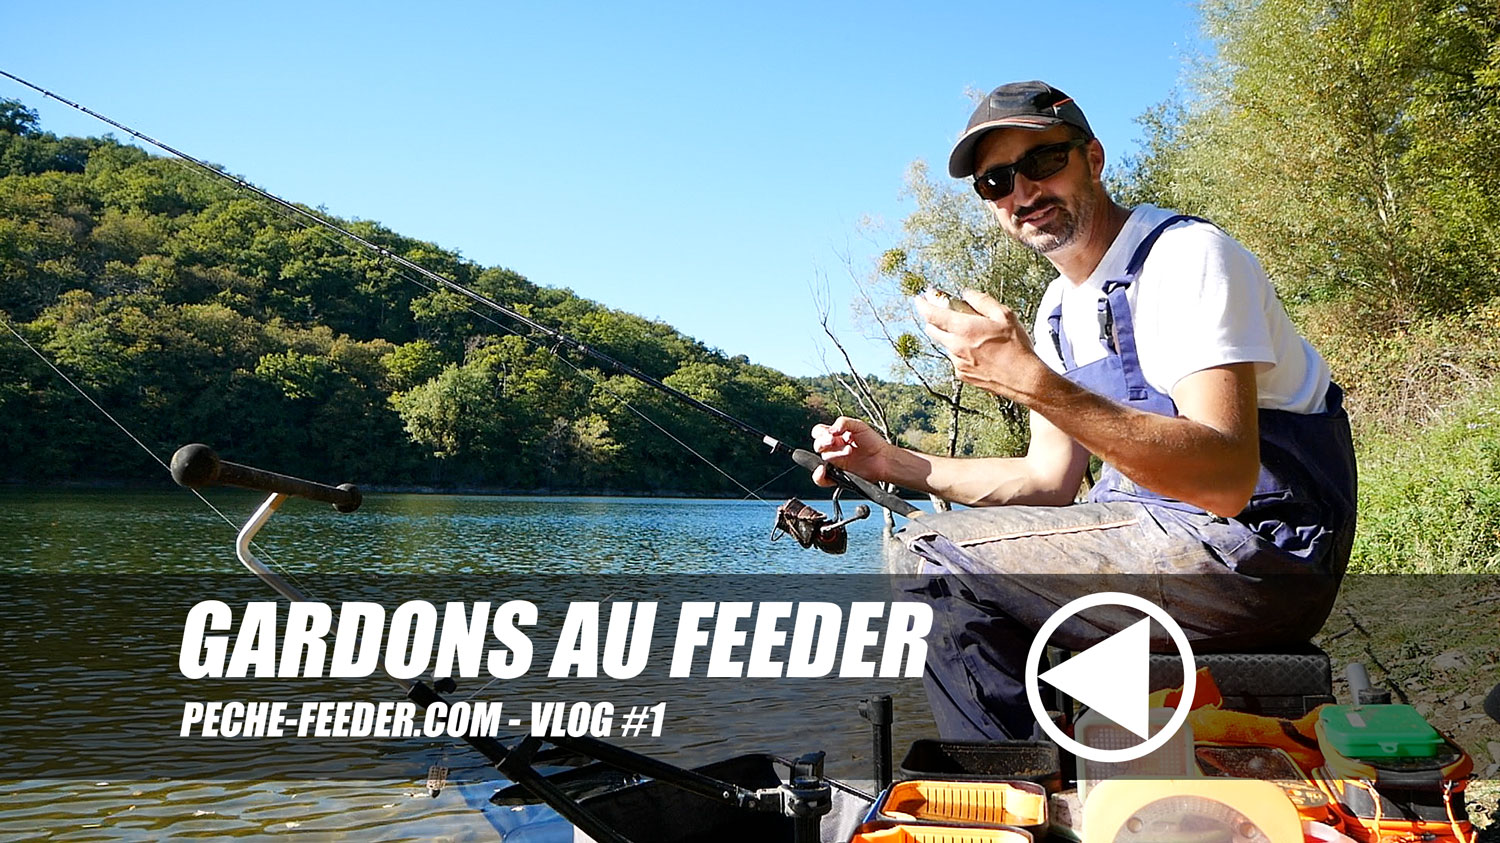 gardon-peche-feeder-video-vlog-3